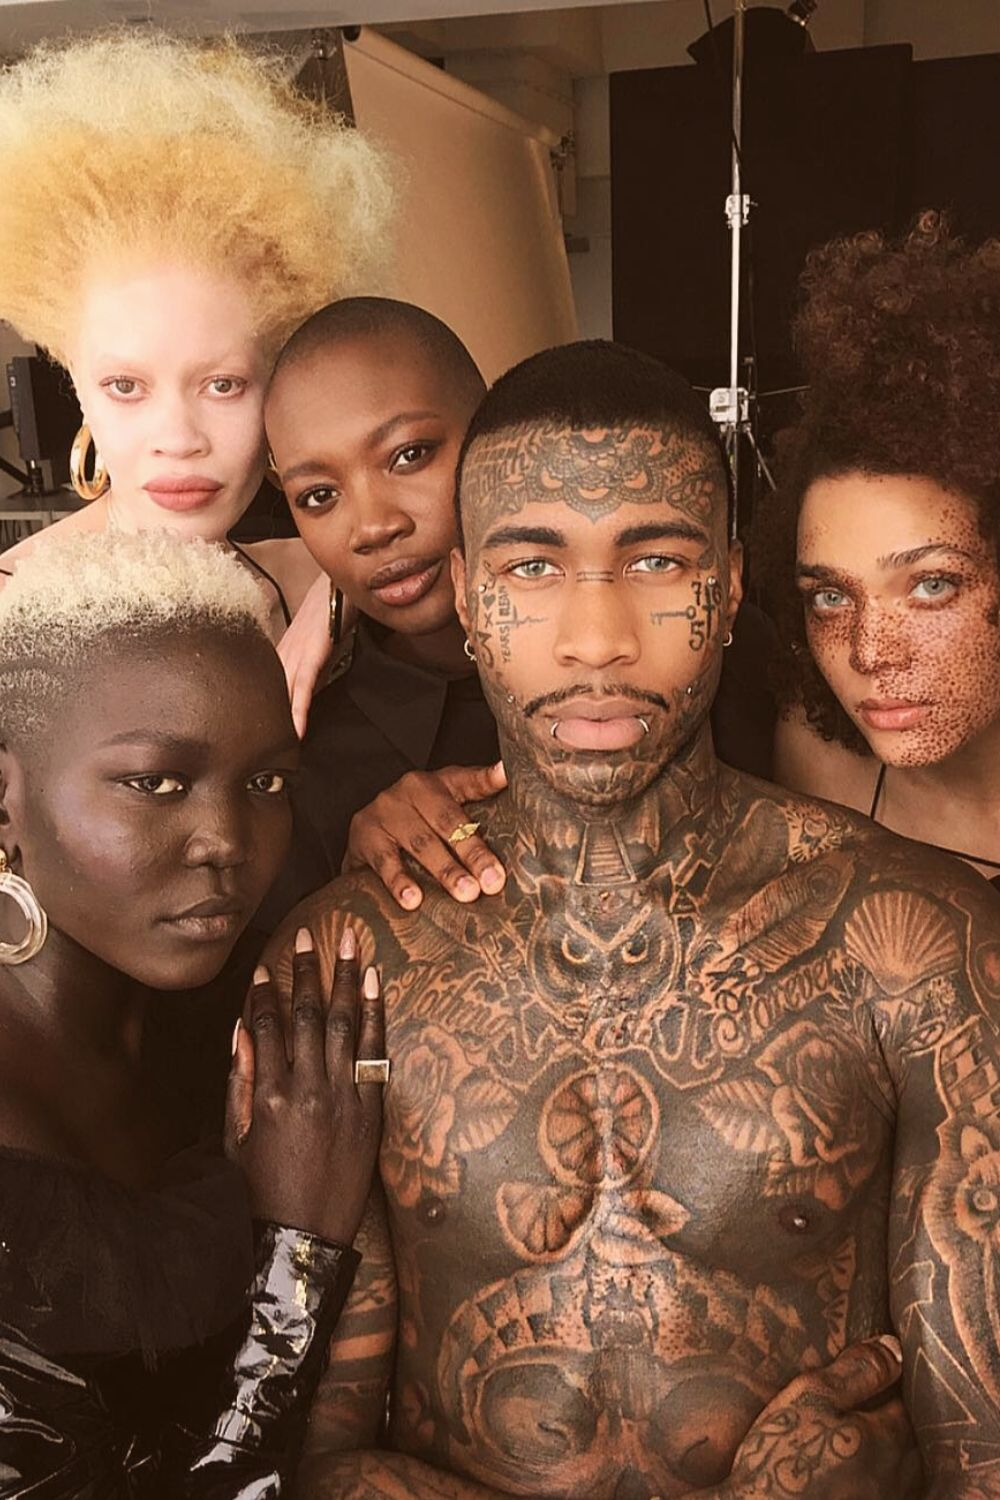 The Most Beautiful And Fascinating Human Conditions In 2021 Black Is Beautiful Black Girl Aesthetic Shades Of Black